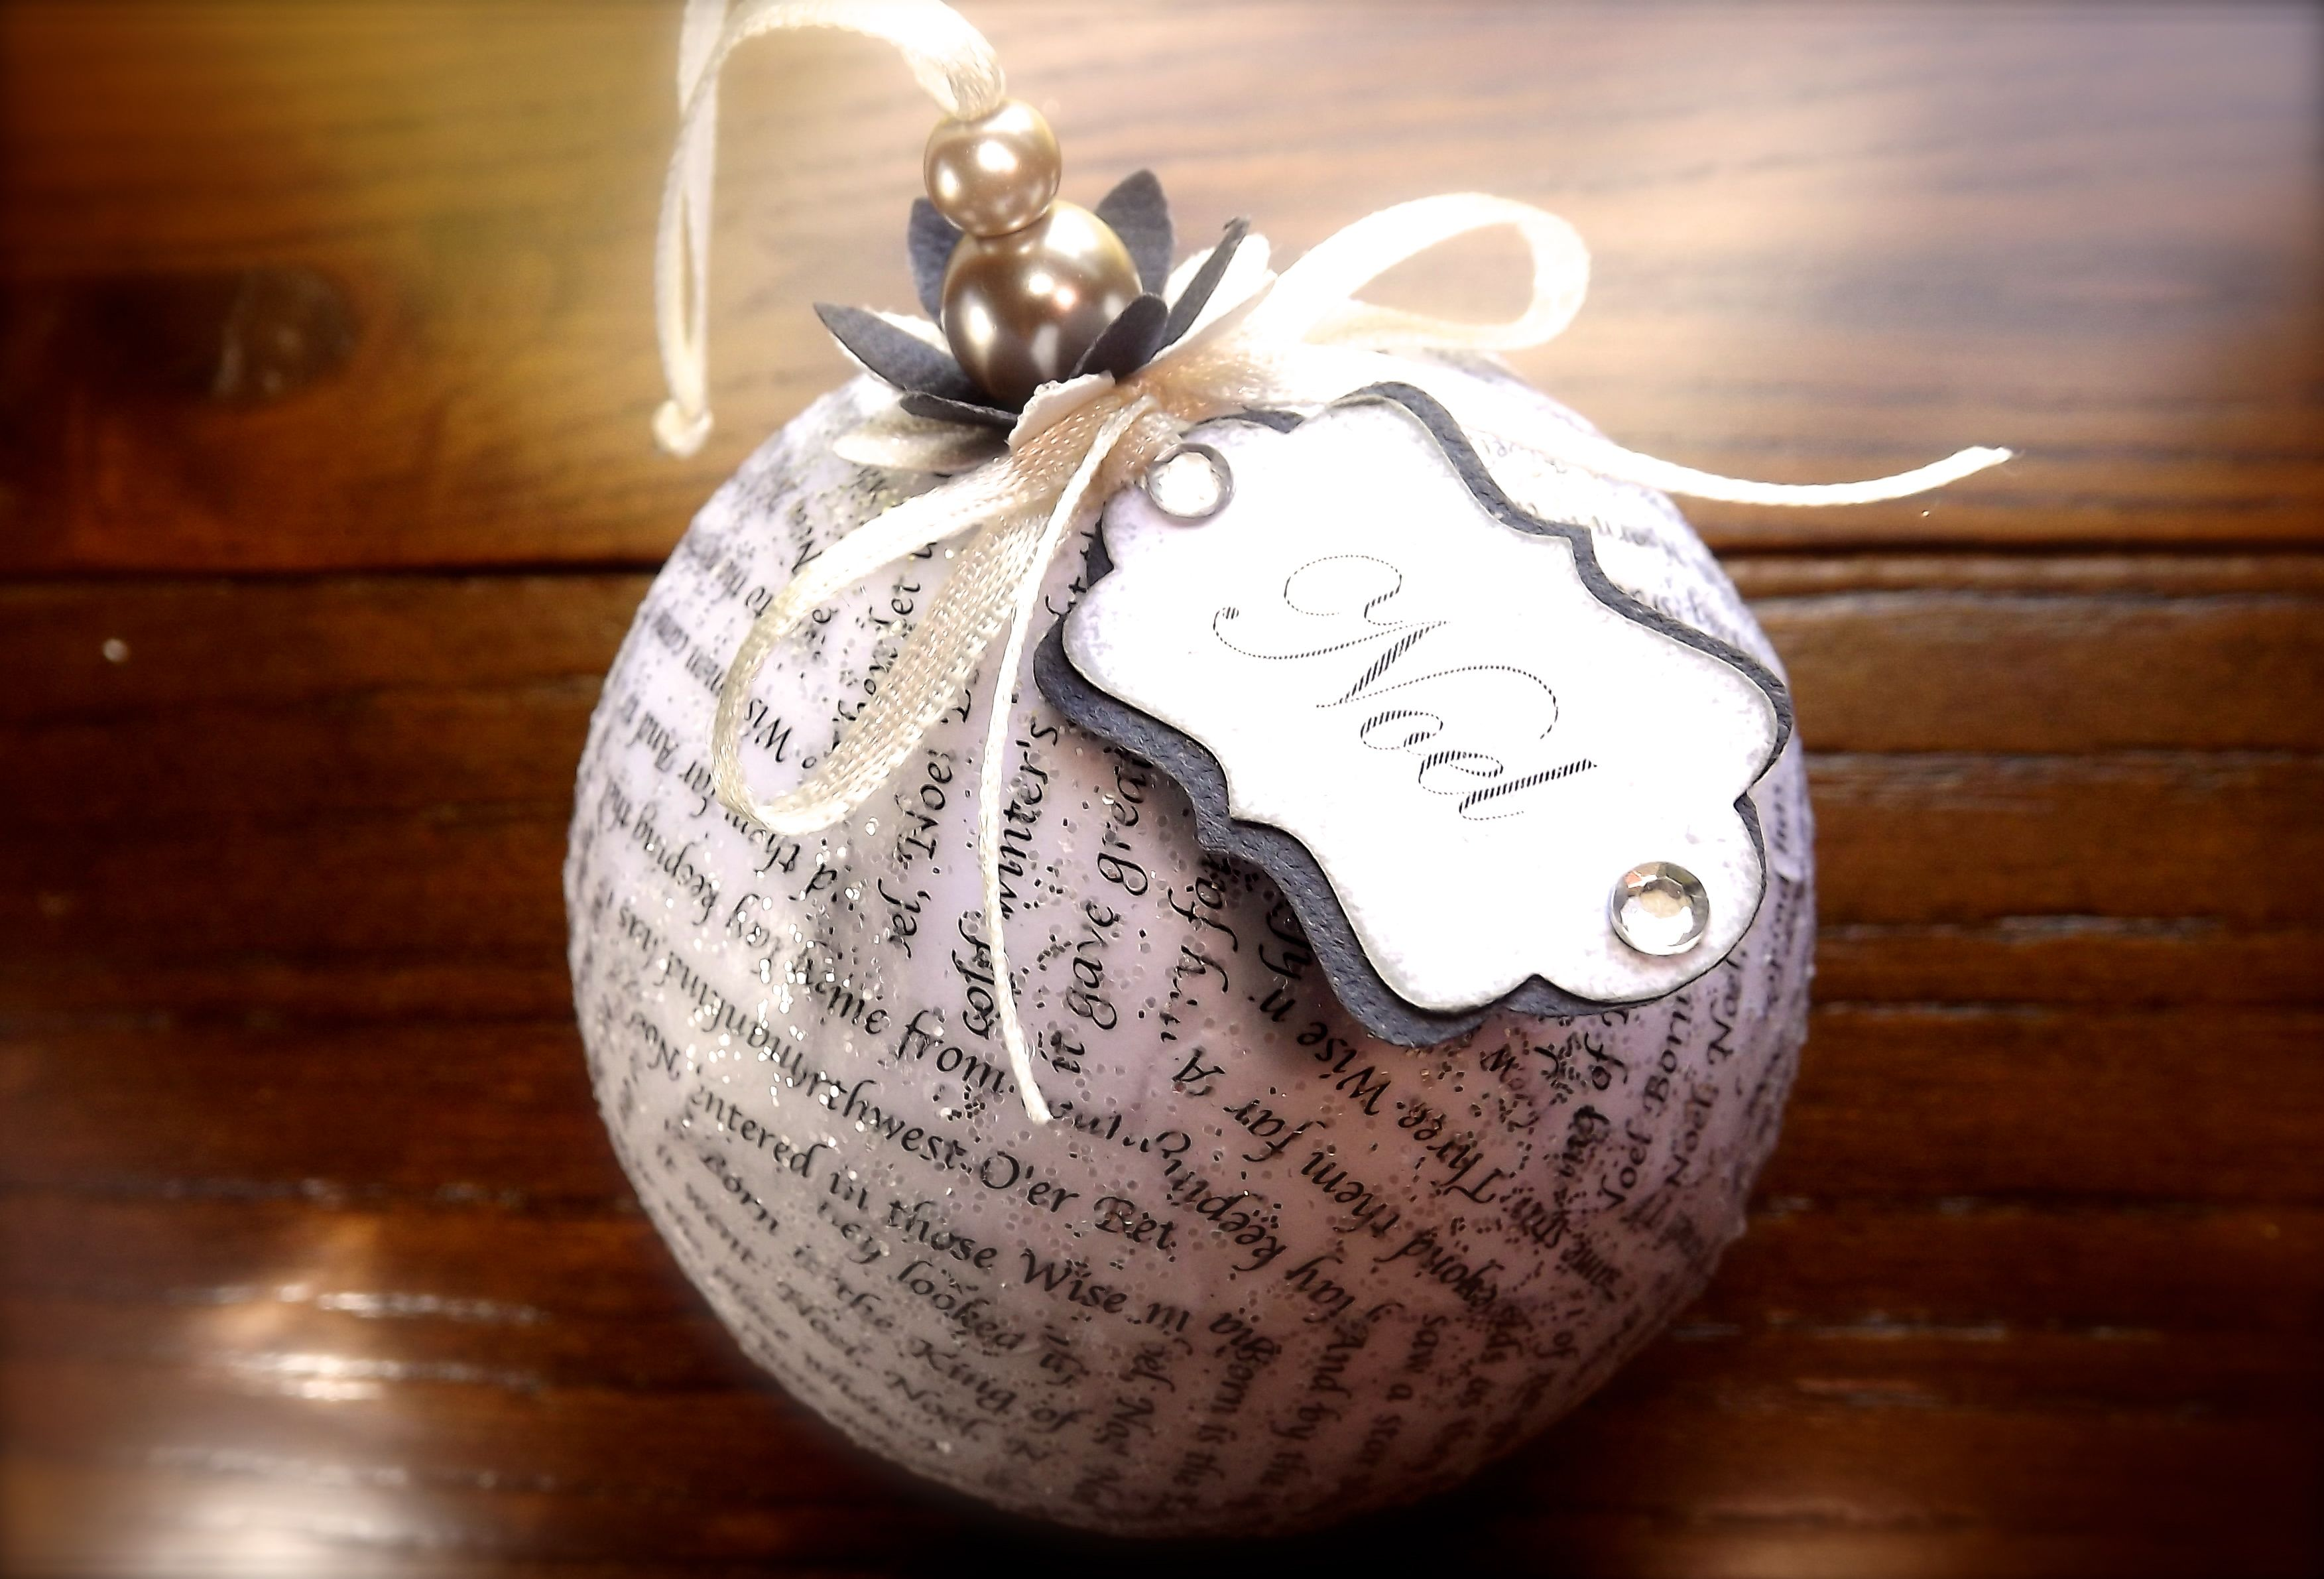 """Christmas decoration ornament featuring decoupaged Christmas carol lyrics, shimmering with a splash of glitter and tags printed with the key word of the song - """"the first noel"""", """"Joy to the world"""" and """"Jingle bells""""."""